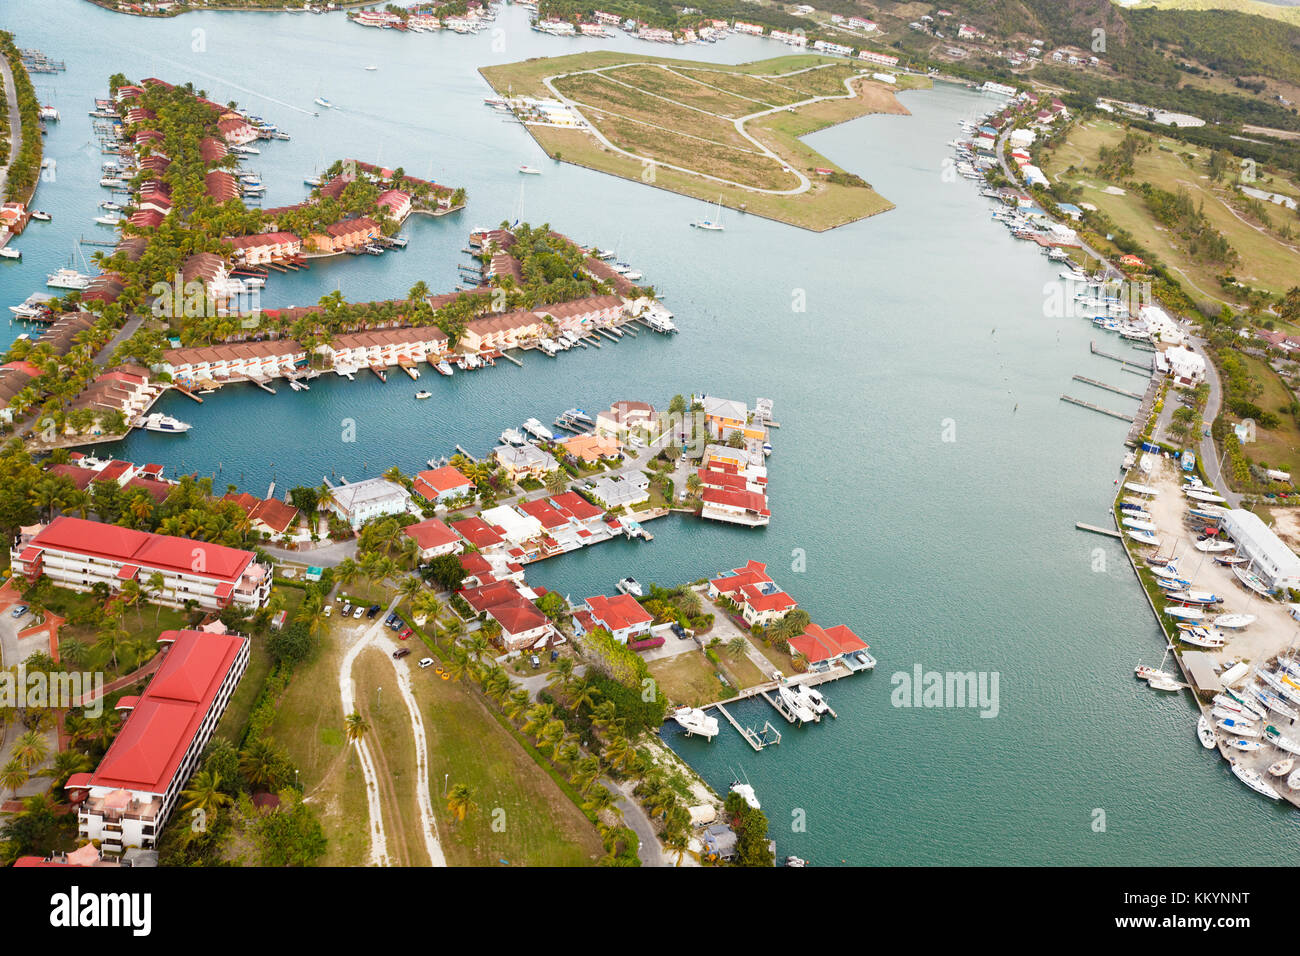 View from a helicopter to Jolly Harbor in Antigua. - Stock Image